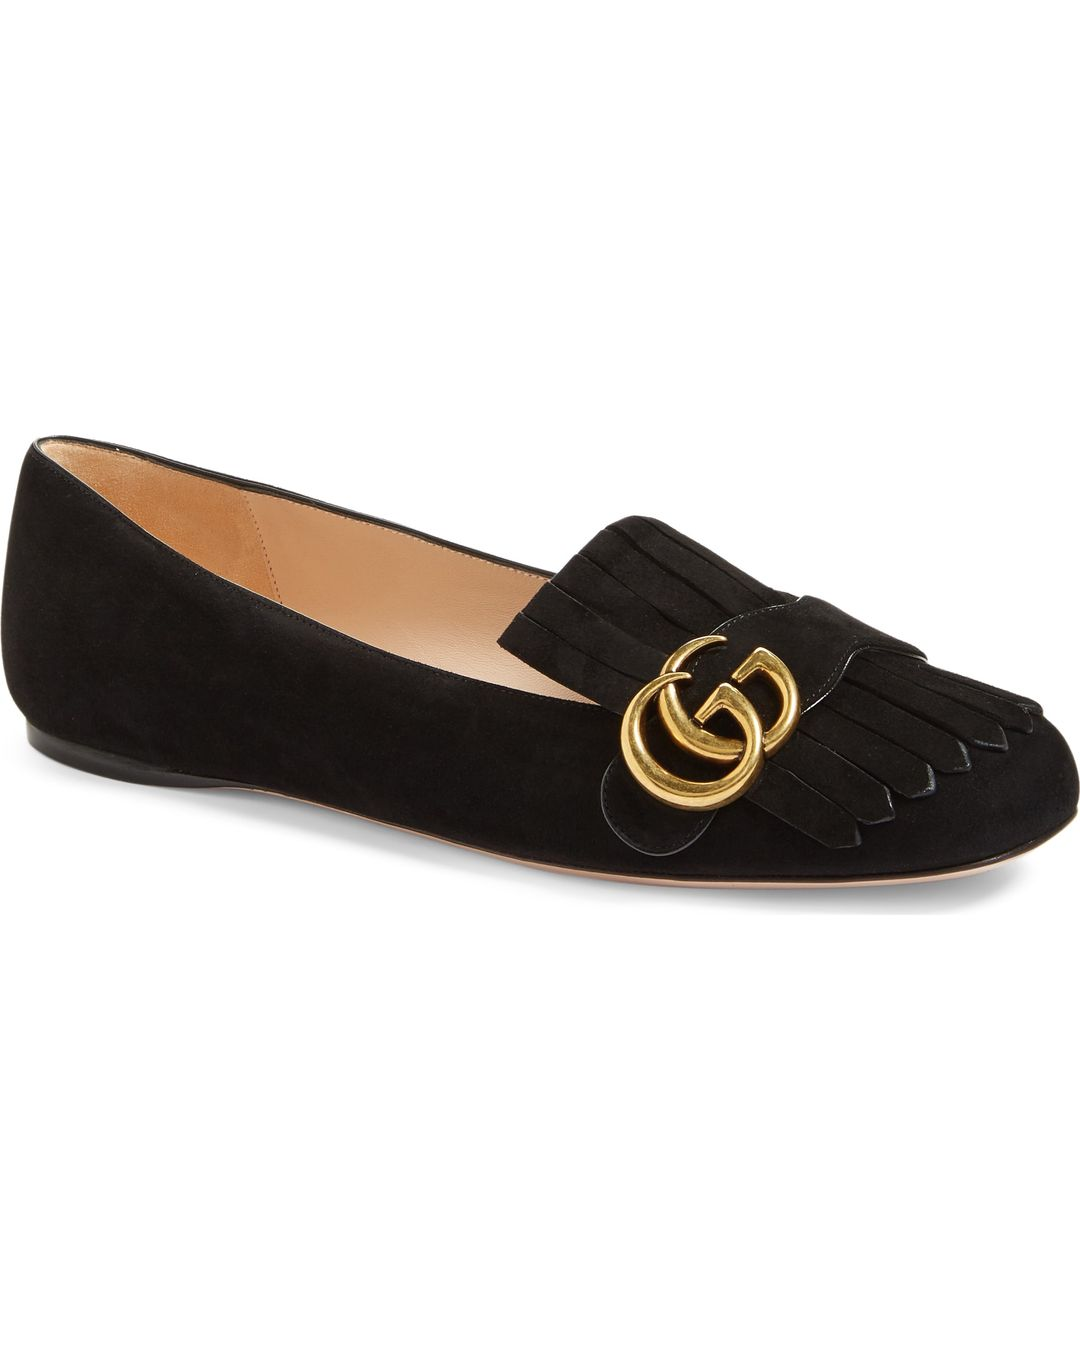 6bc22a0f887b Gucci Marmont Flats Reviews and Sizing – Only Best Shoes